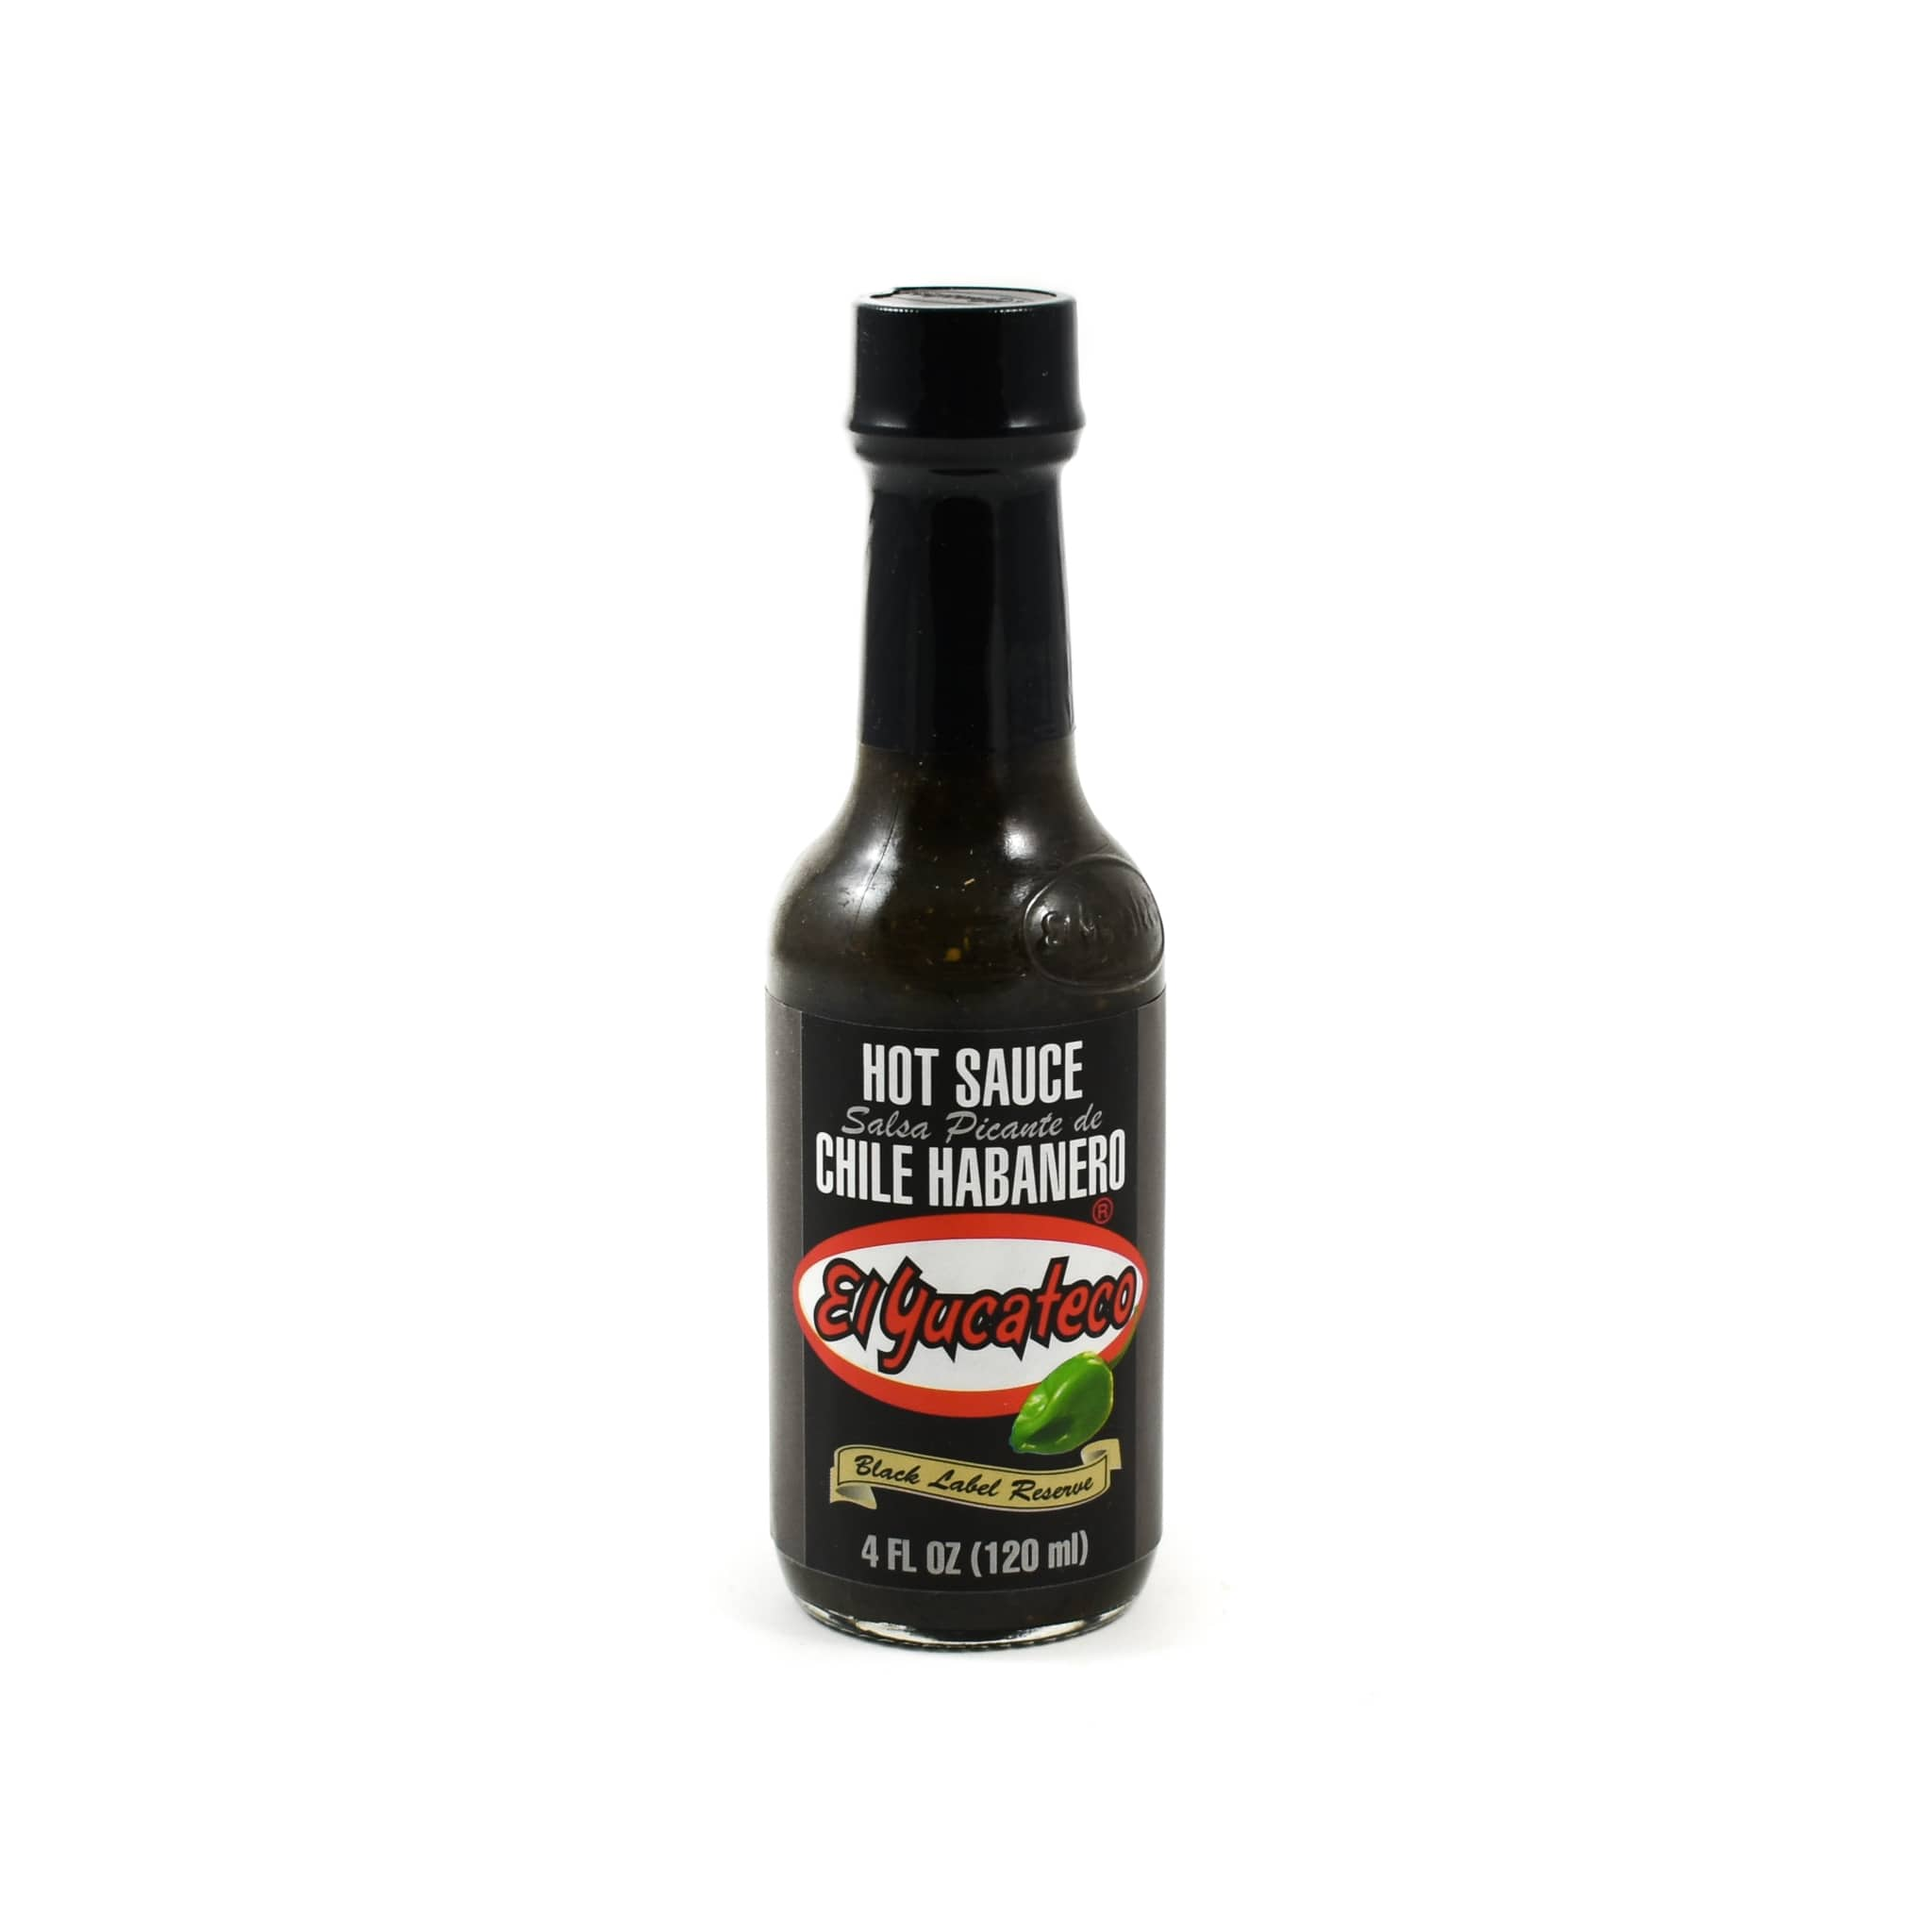 El Yucateco Habanero Black Label Reserve 120ml Mexican Food and Cooking